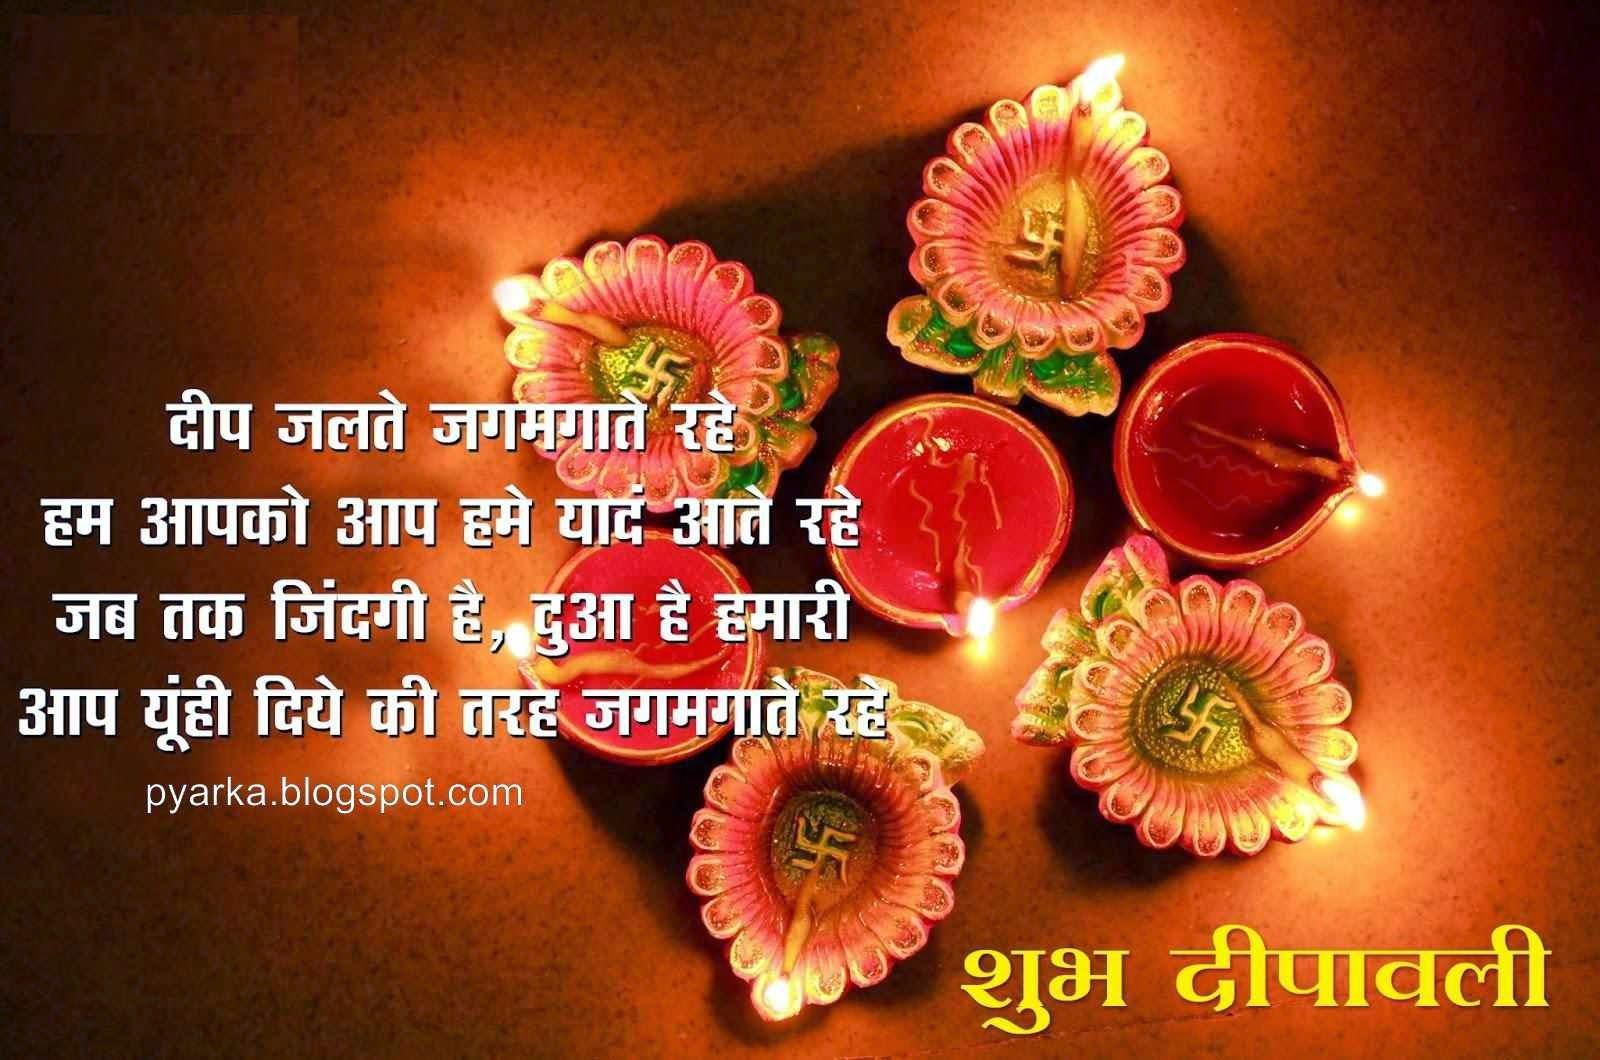 best ideas about happy diwali in hindi diwali 17 best ideas about happy diwali in hindi diwali diwali festival and diwali pictures